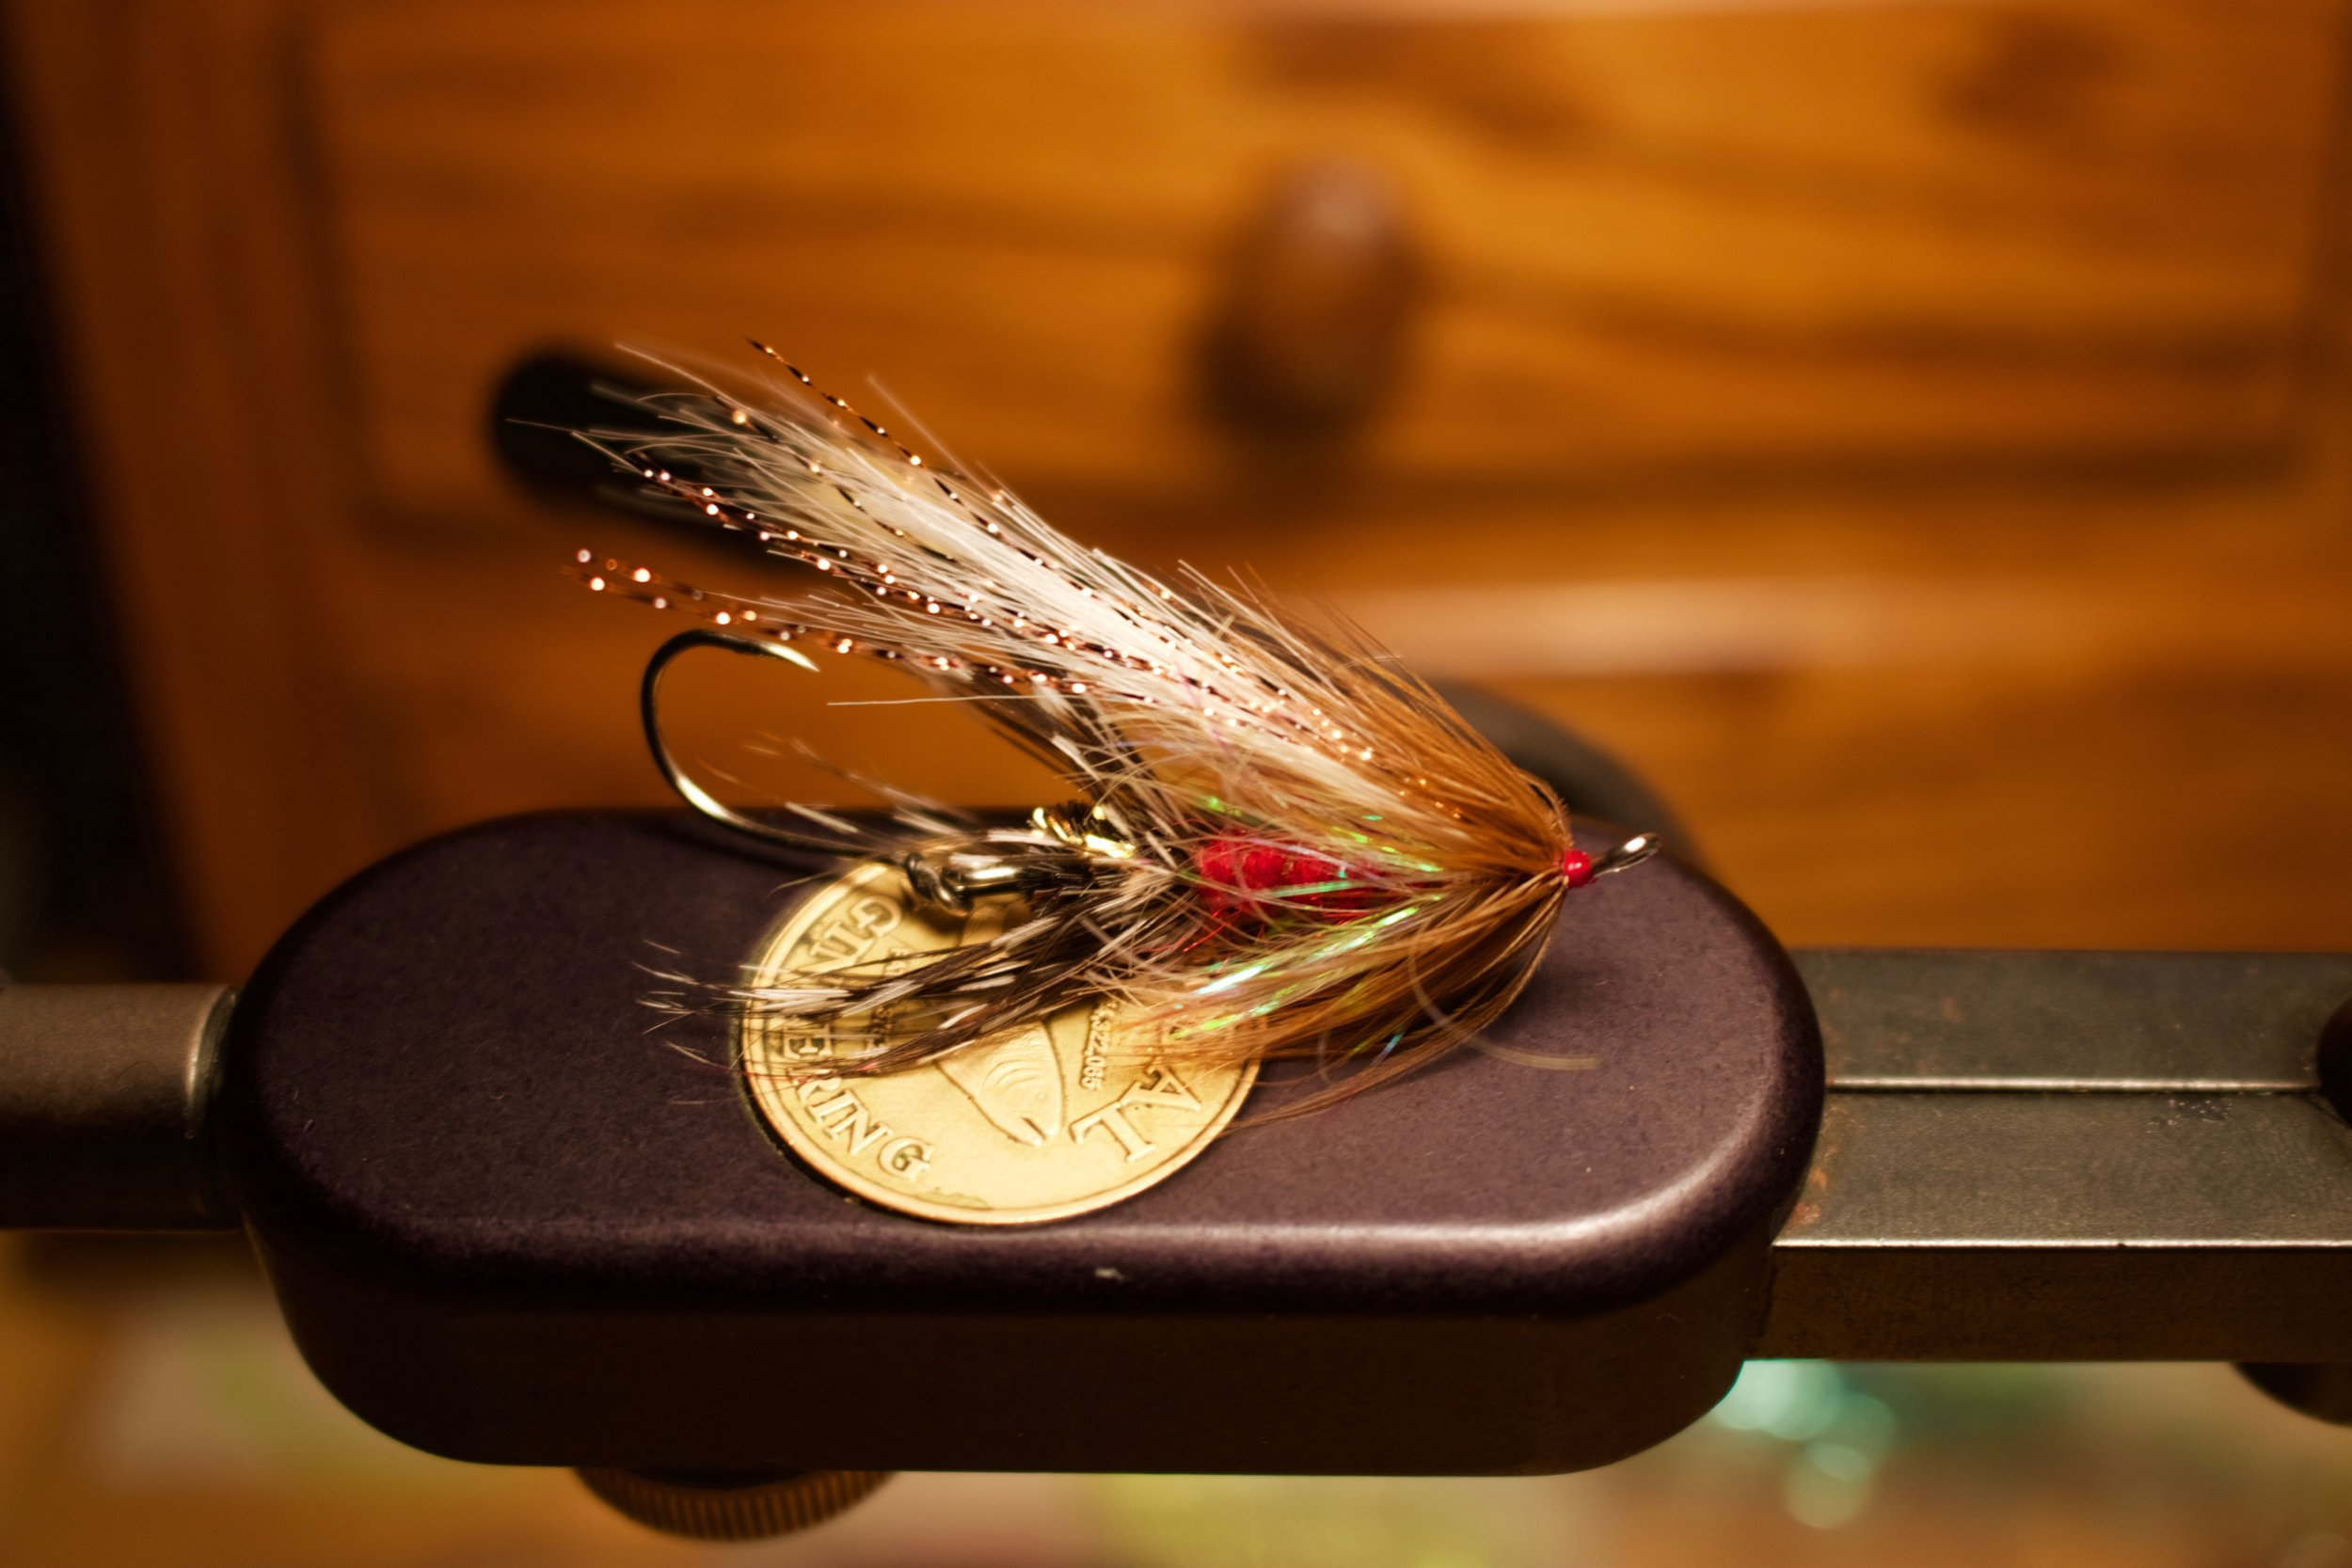 A variation of the vaunted Royal Coachman. This pattern was one of the original steelhead flies on the west-coast, along with the now little remembered Parmachene Belle and Thor. It still gets em! Tied on a 35mm Partridge shank with a Sz4 owner on the business end.